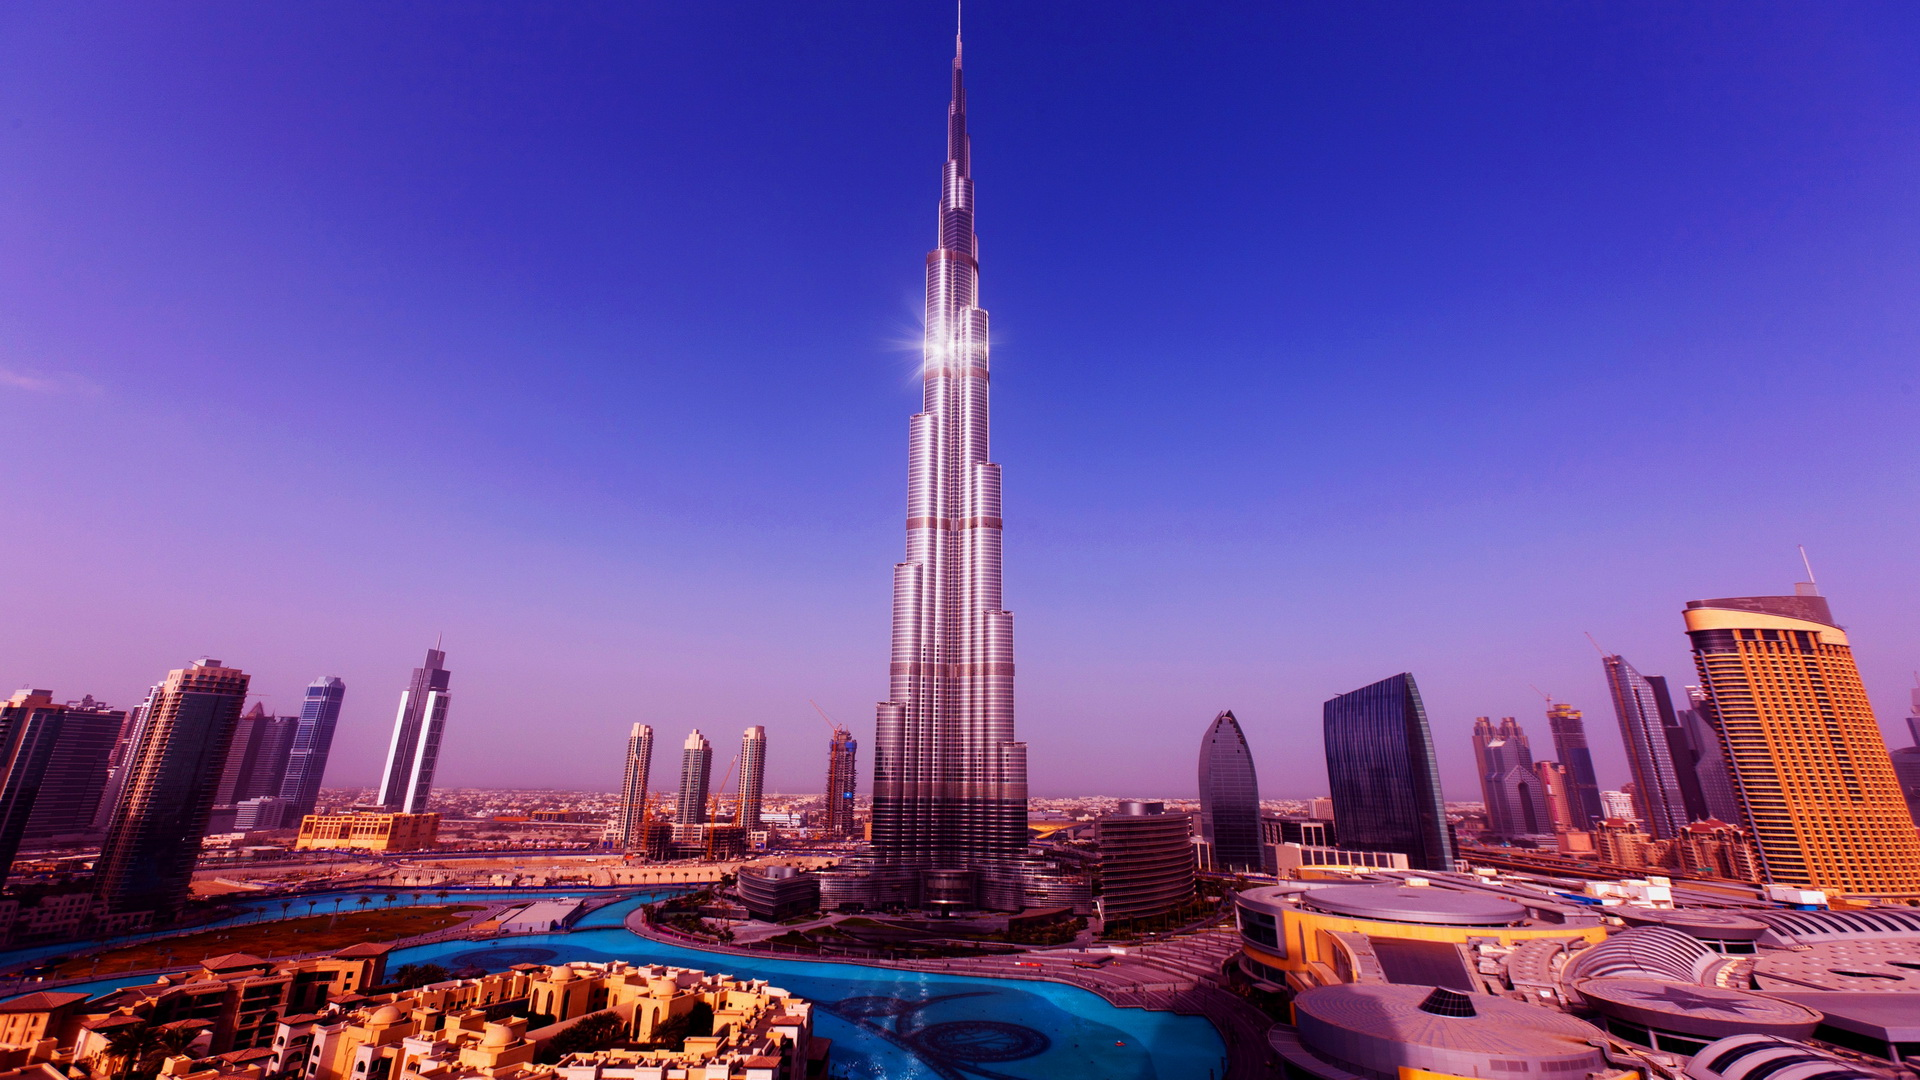 Burj-Khalifa-Dubai-Skyline-Android-free-download-wallpaper-wpc5803098